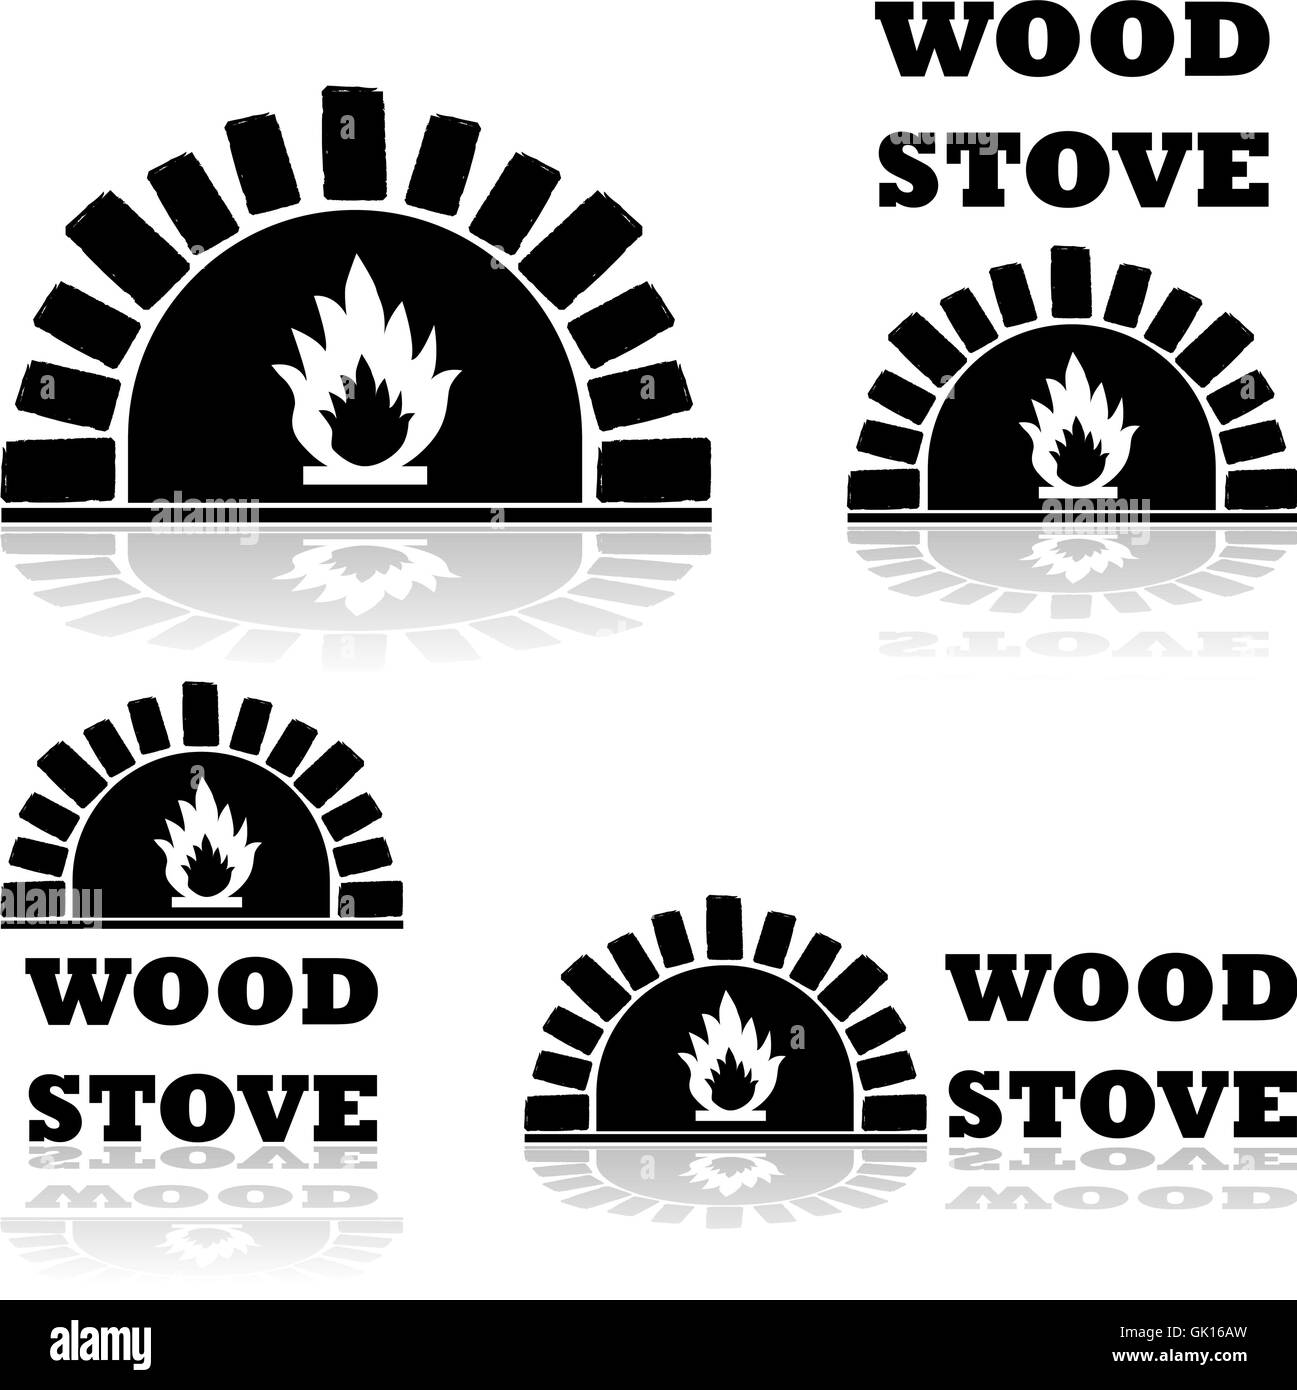 Wood stove - Stock Vector